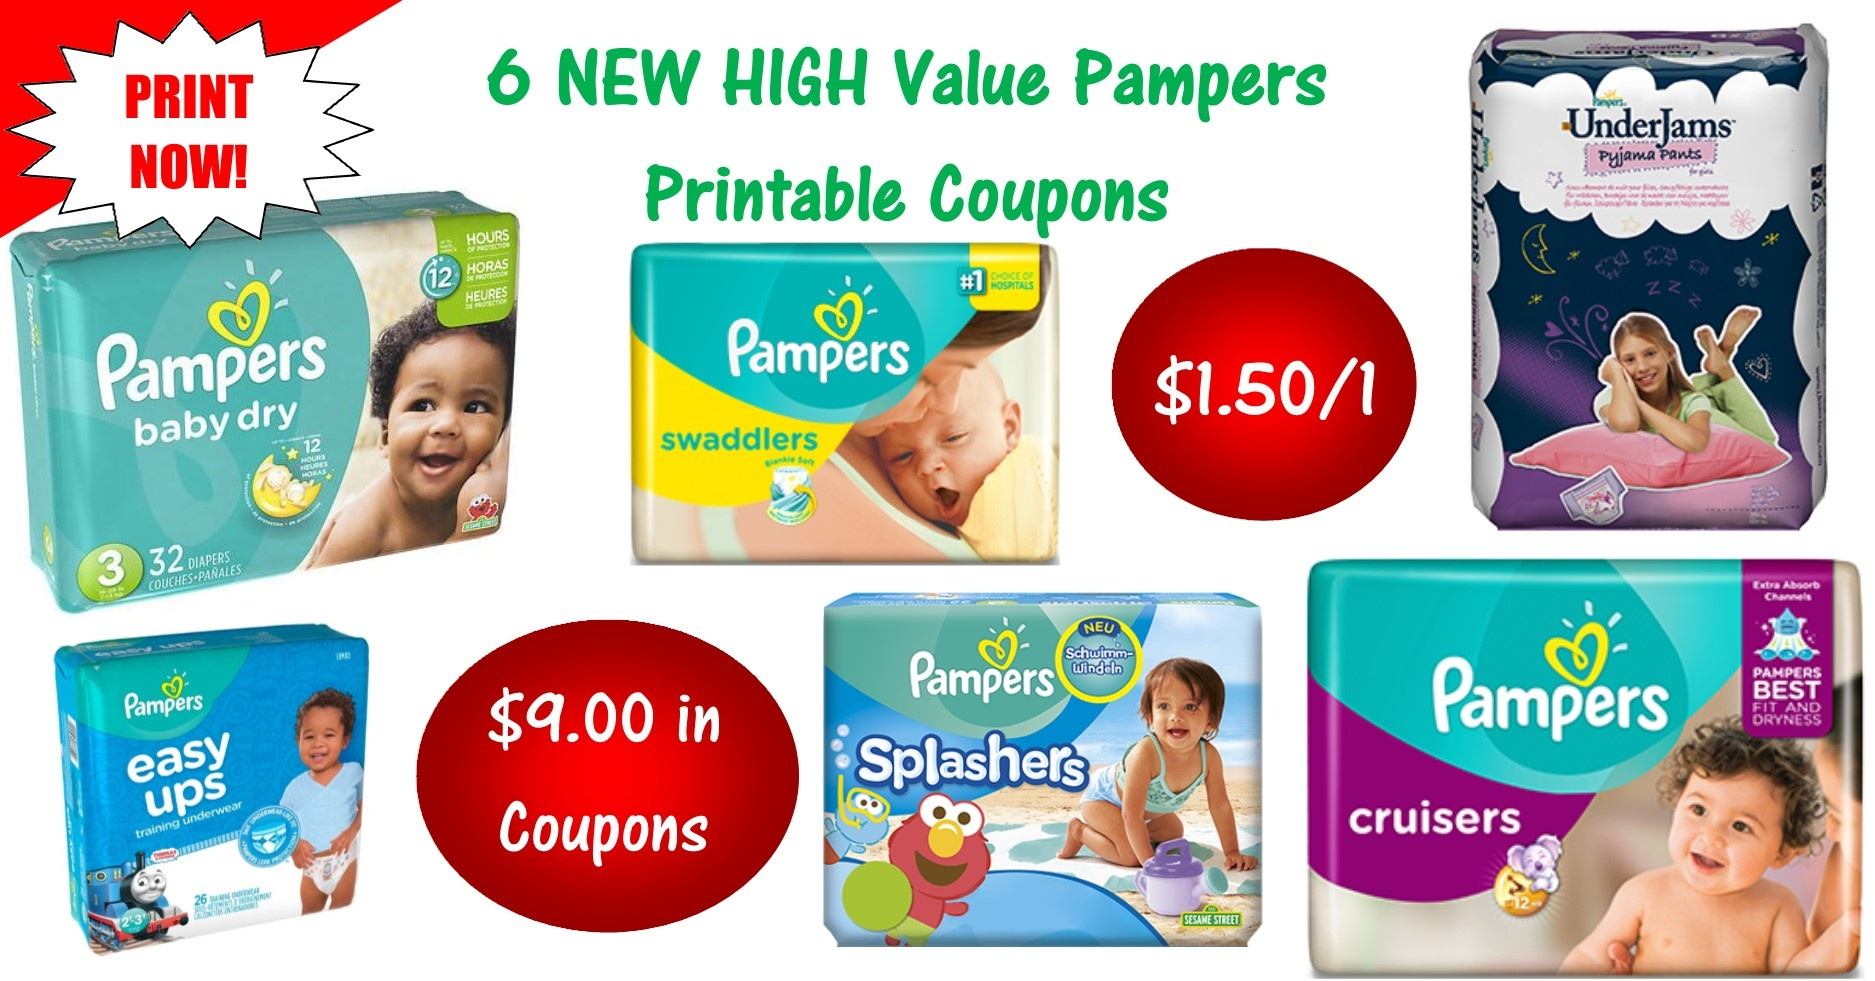 6 Pampers Printable Coupons ~ Print Now! $9 In Savings! - Free Printable Coupons For Pampers Pull Ups